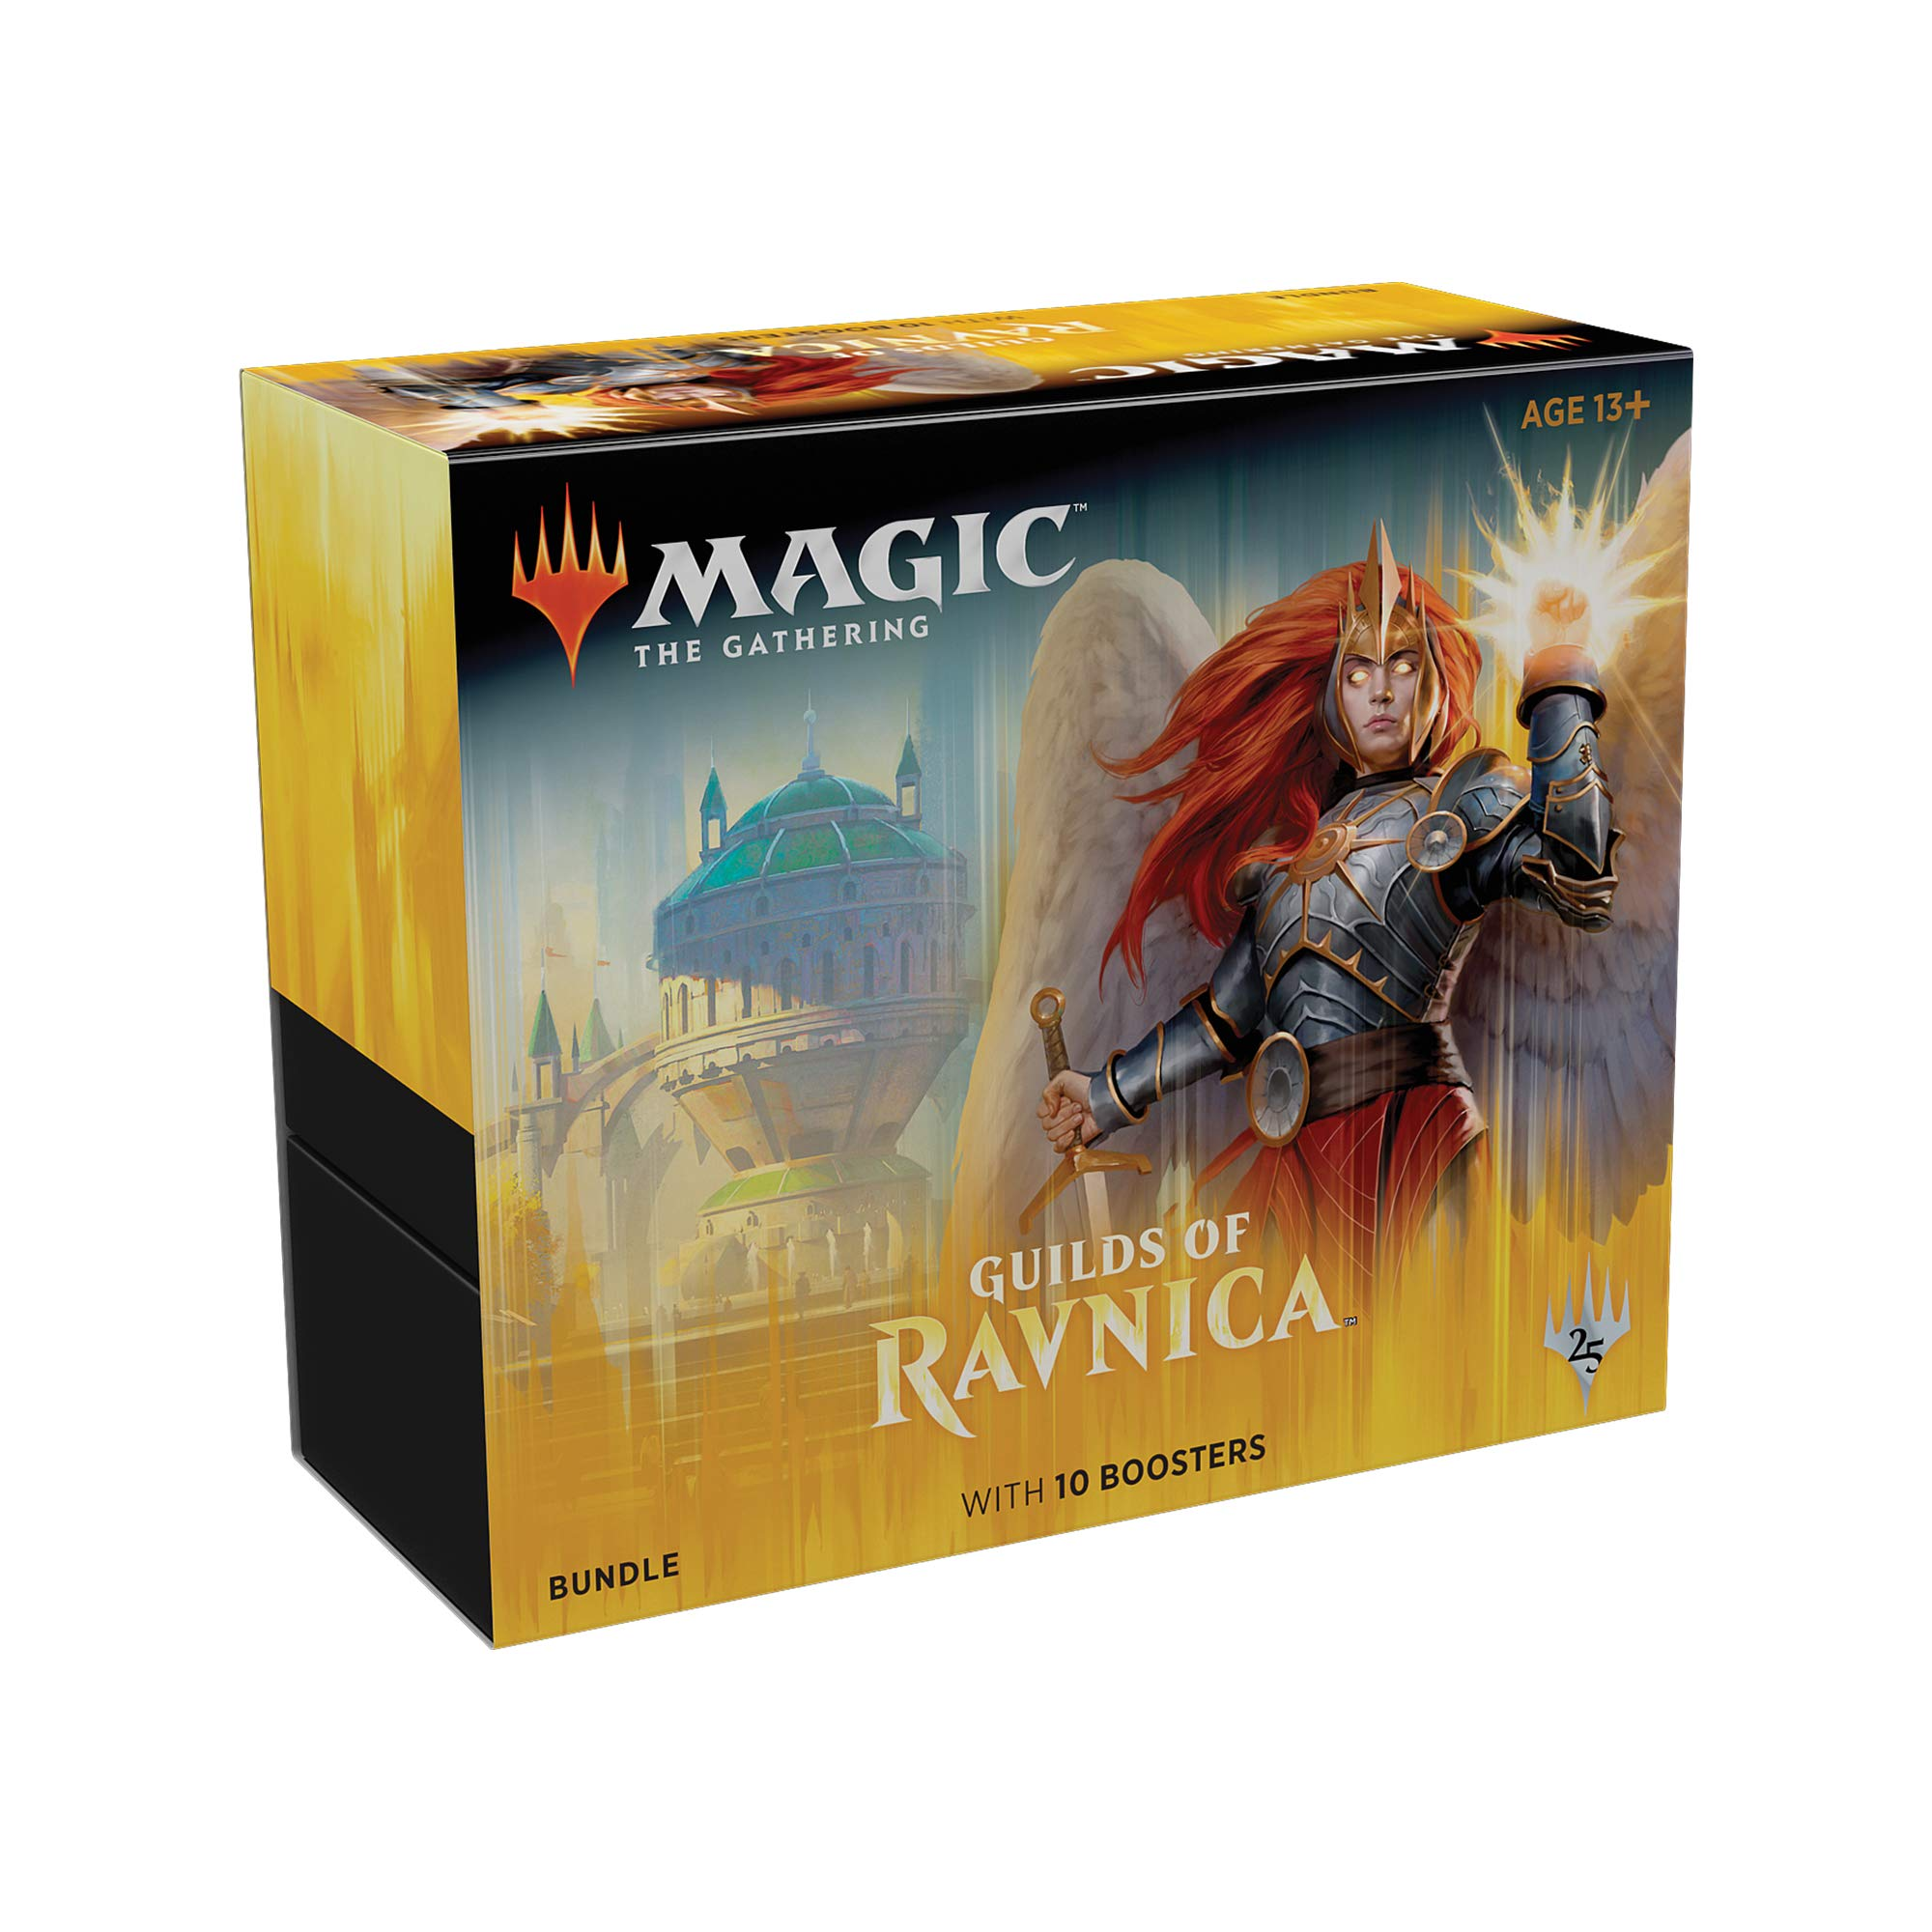 Magic: The Gathering Guilds of Ravnica Bundle | 10 Booster Packs + Land Cards (230 Cards) | Accessories | New Set by Magic: The Gathering (Image #1)